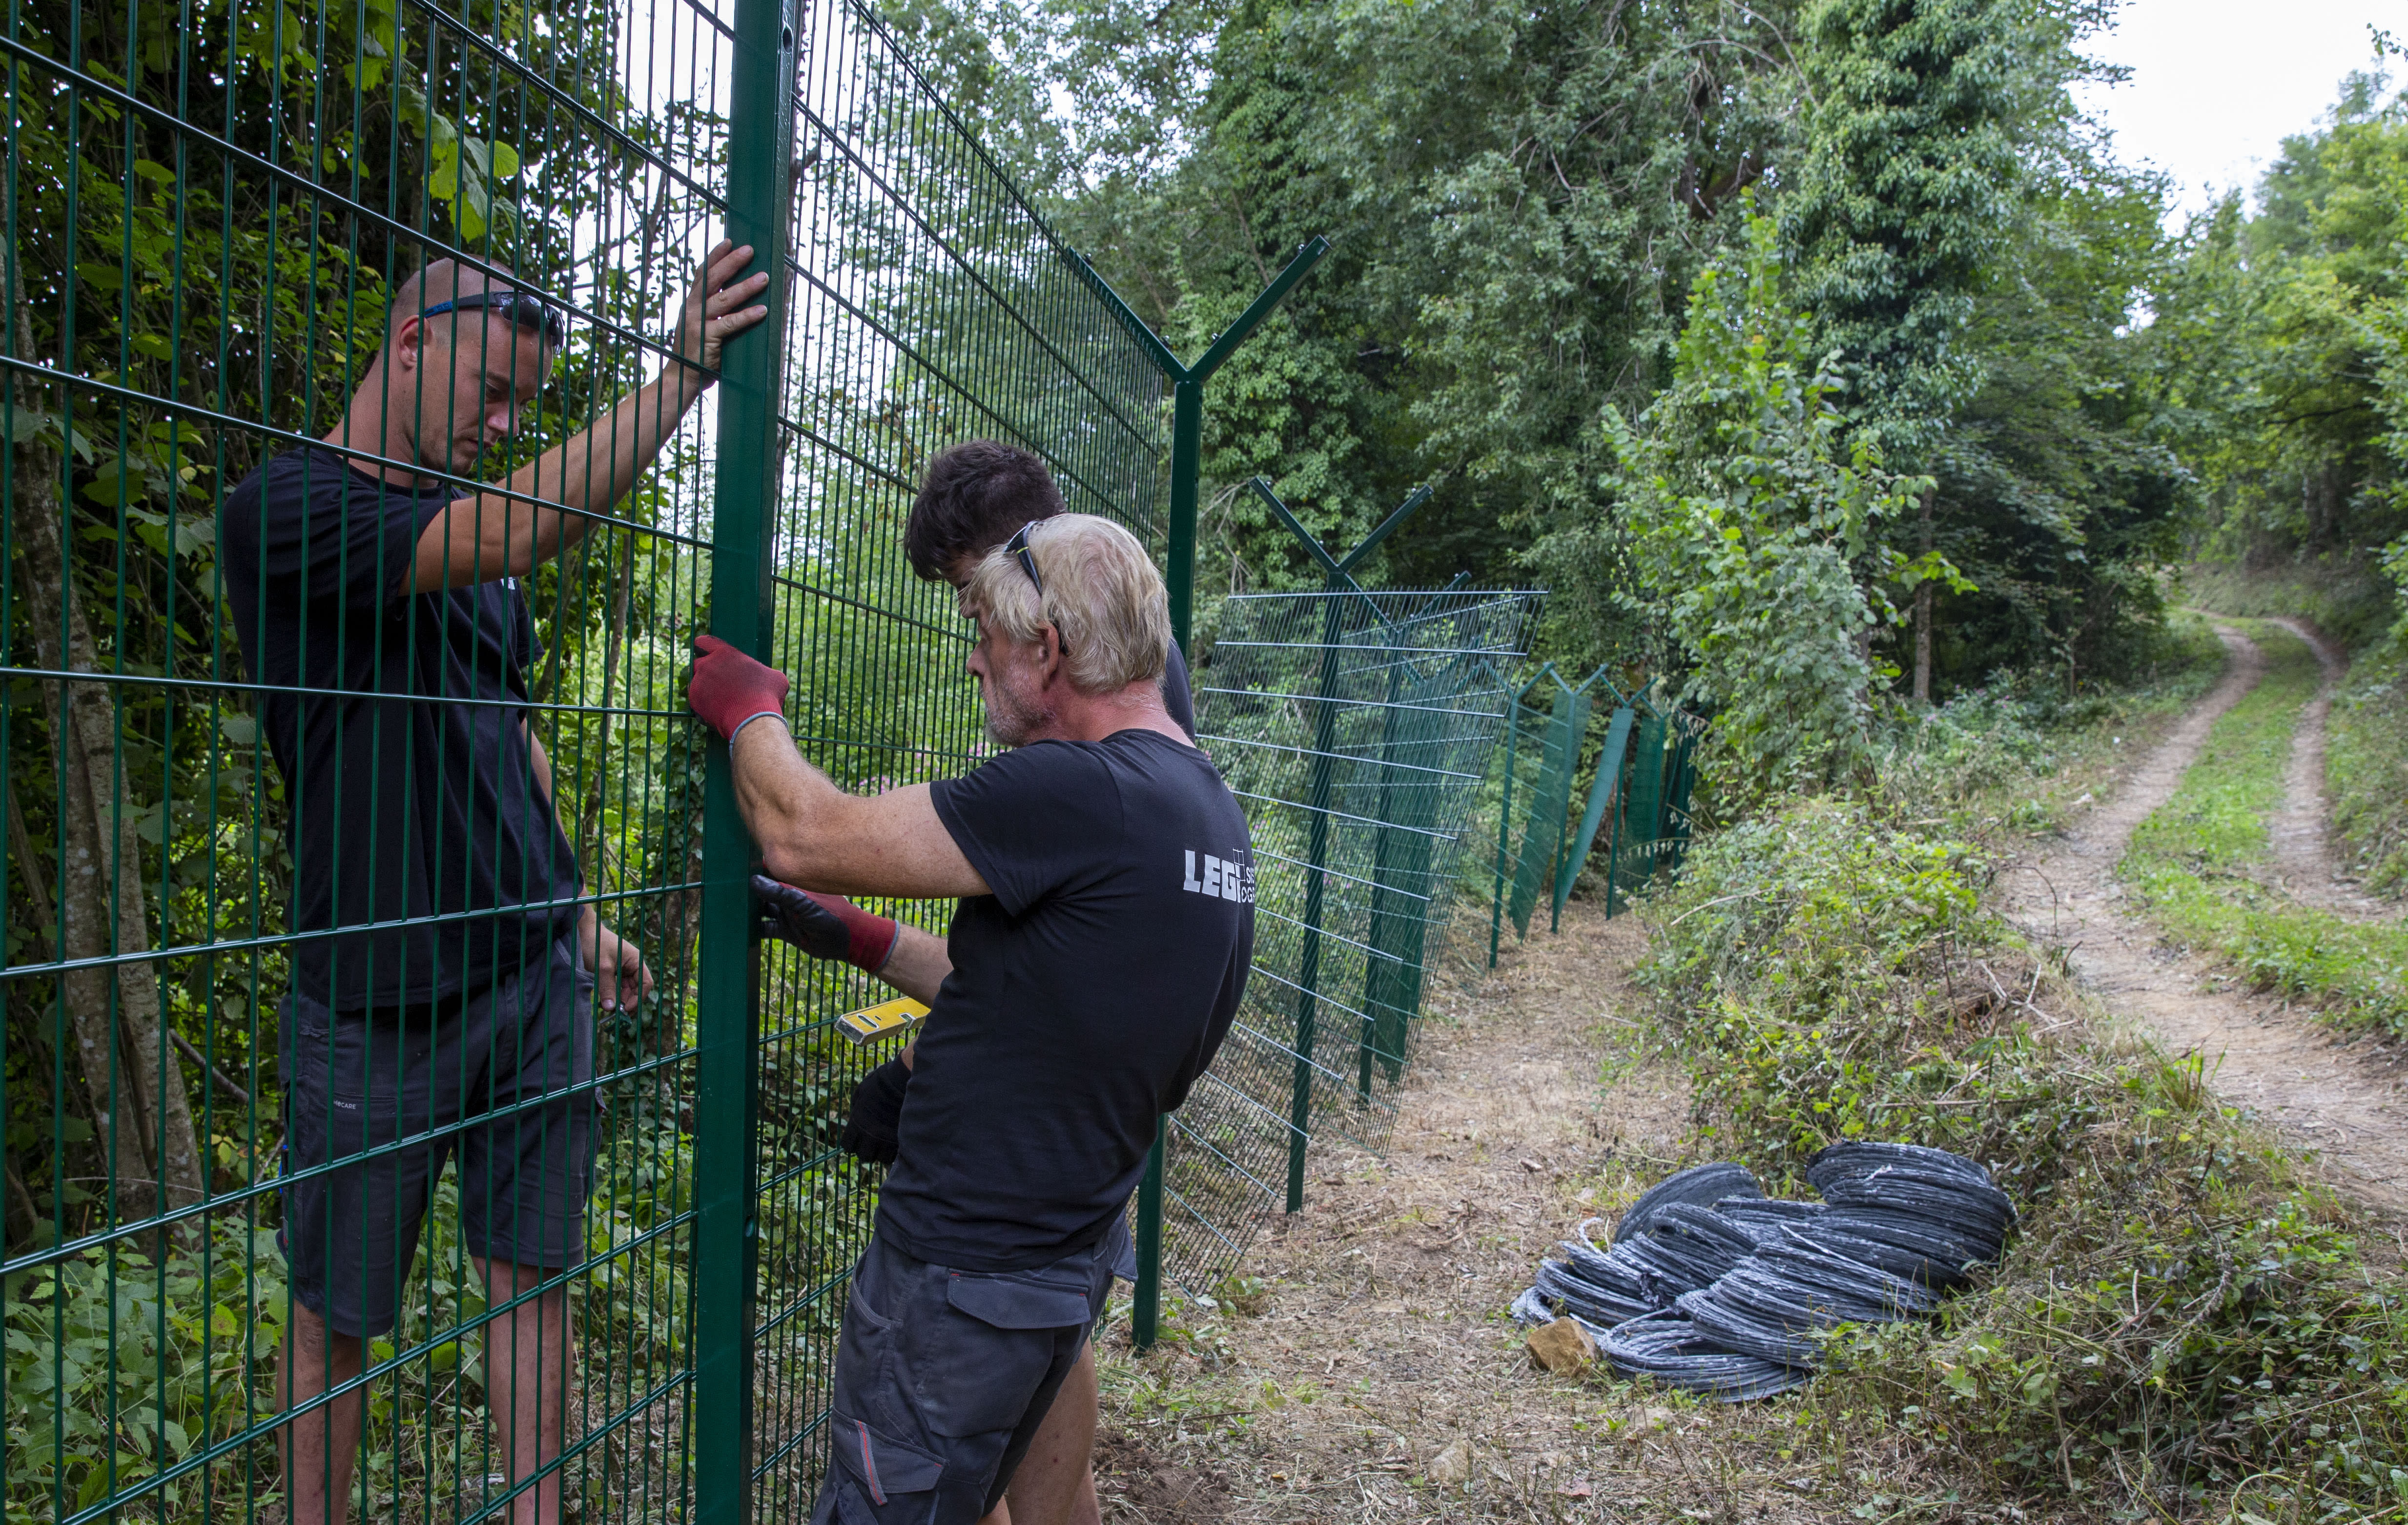 In this photo taken Friday, Aug. 23, workers put up a border fence next to the Kupa river on the Slovenia-Croatia border in the village of Preloka, Slovenia. Police in Croatia say a migrant has died after a van carrying 12 of them plunged into a river near the border with Slovenia, early Sunday. Slovenia started erecting additional fences on its southern border with Croatia after a considerable increase in the number of migrants trying to illegally cross between the two European Union-member states. (AP Photo/Darko Bandic)